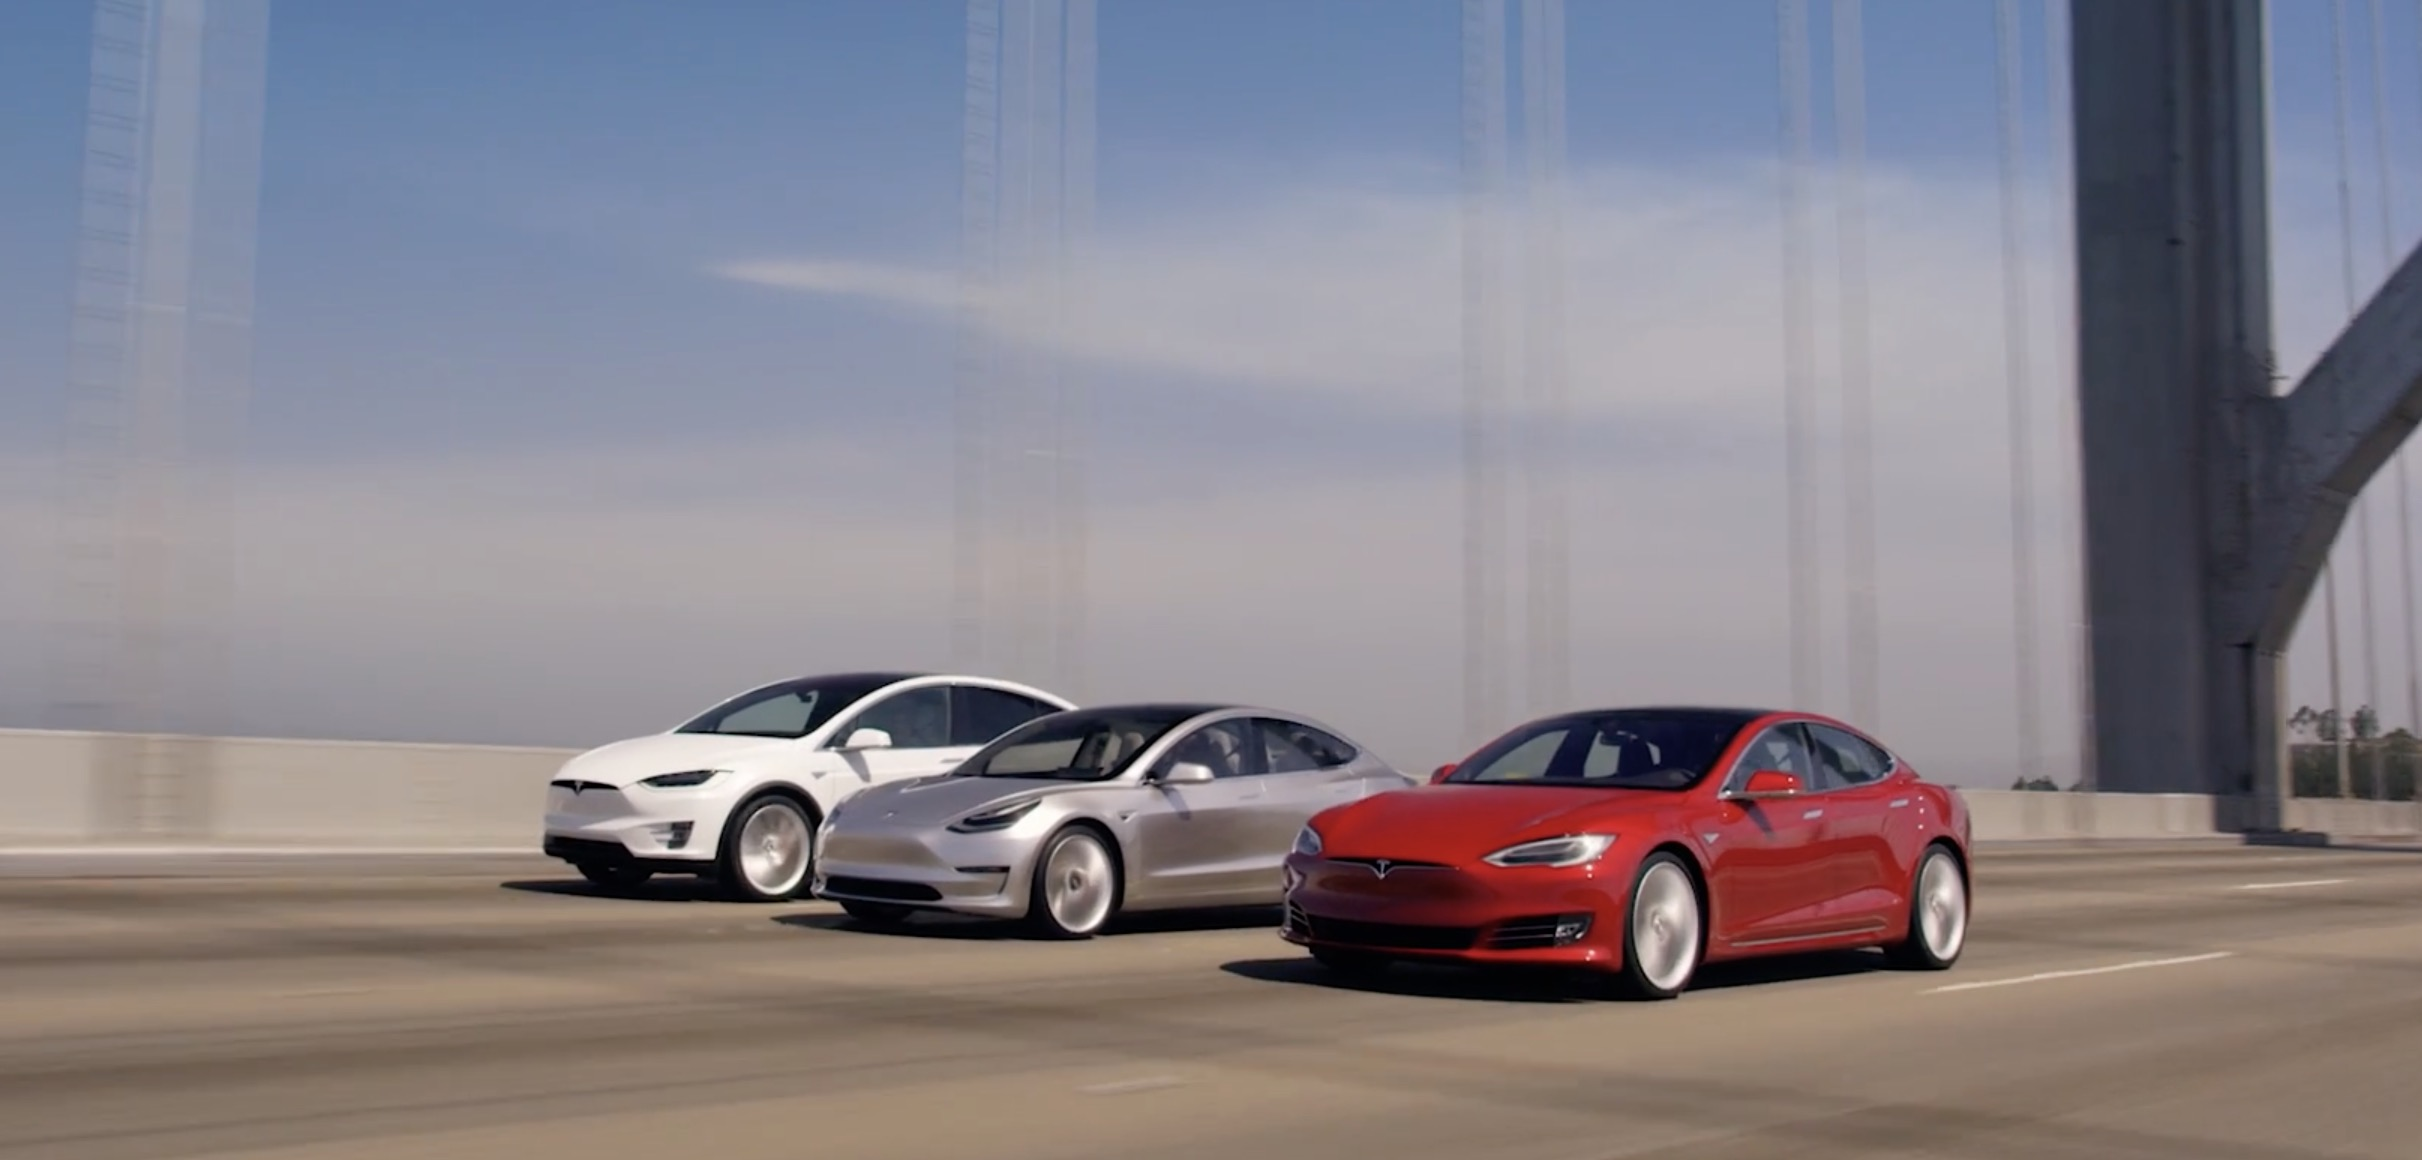 Tesla is within reach of new record quarter for deliveries, says Elon Musk